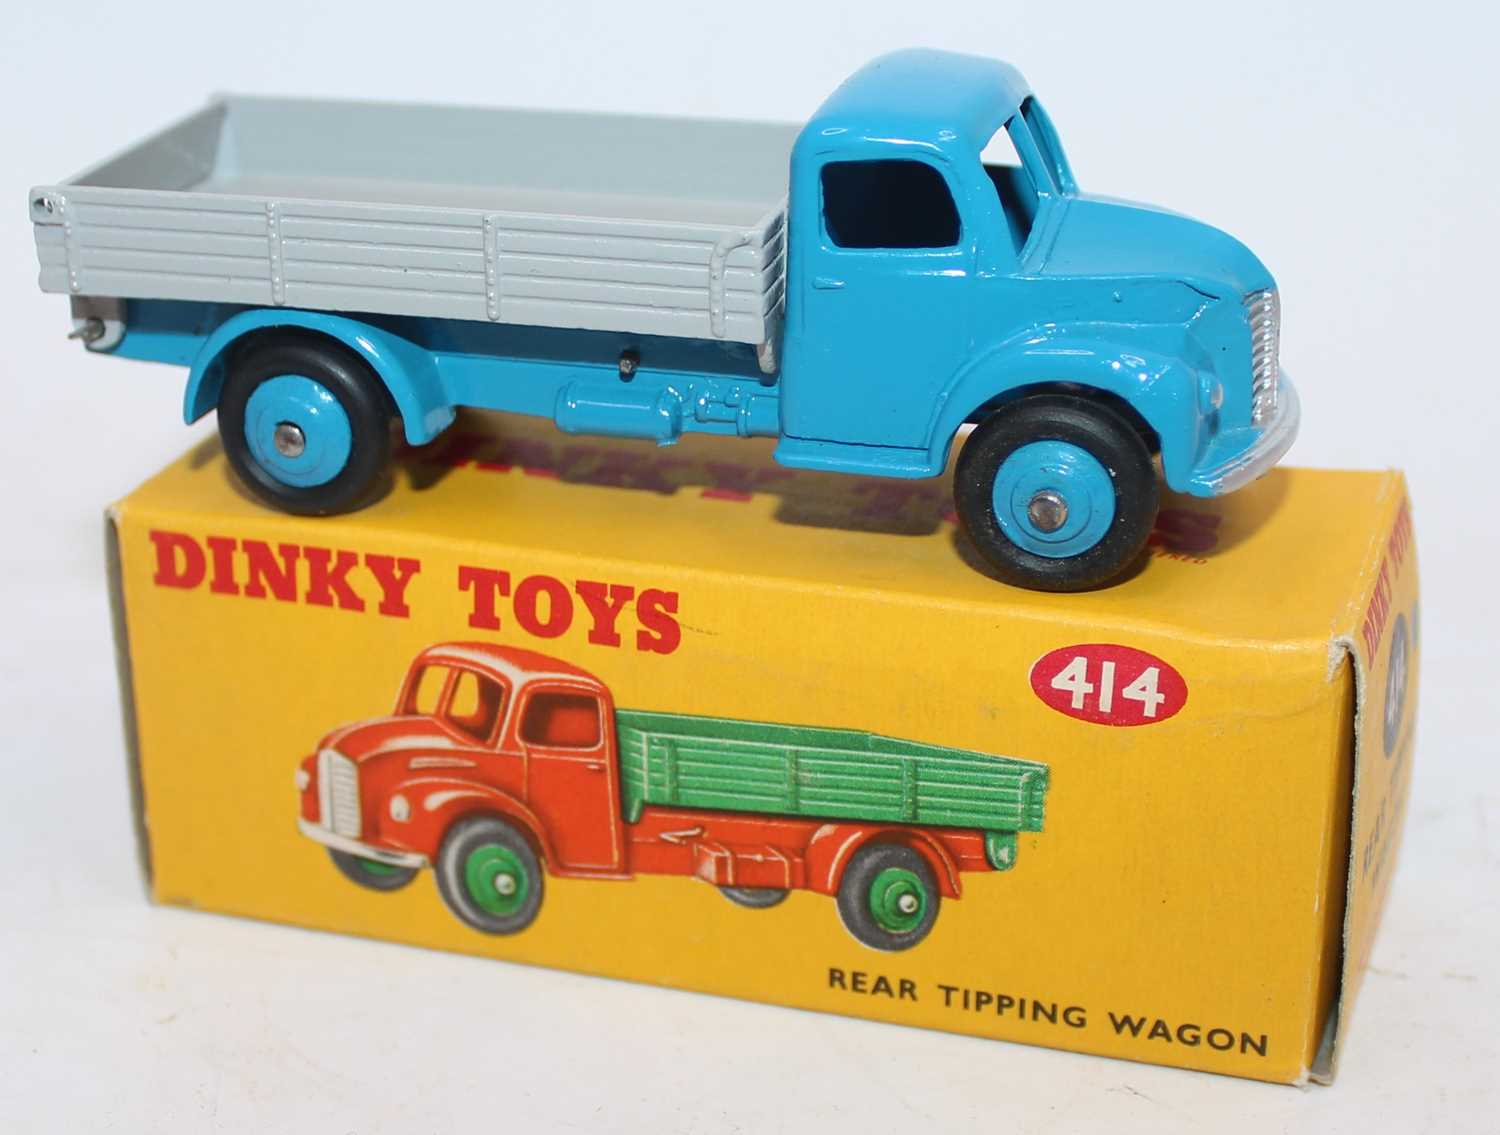 Dinky Toys No.414 Rear Tipping Wagon with light blue cab and chassis with grey back and matching - Image 2 of 2